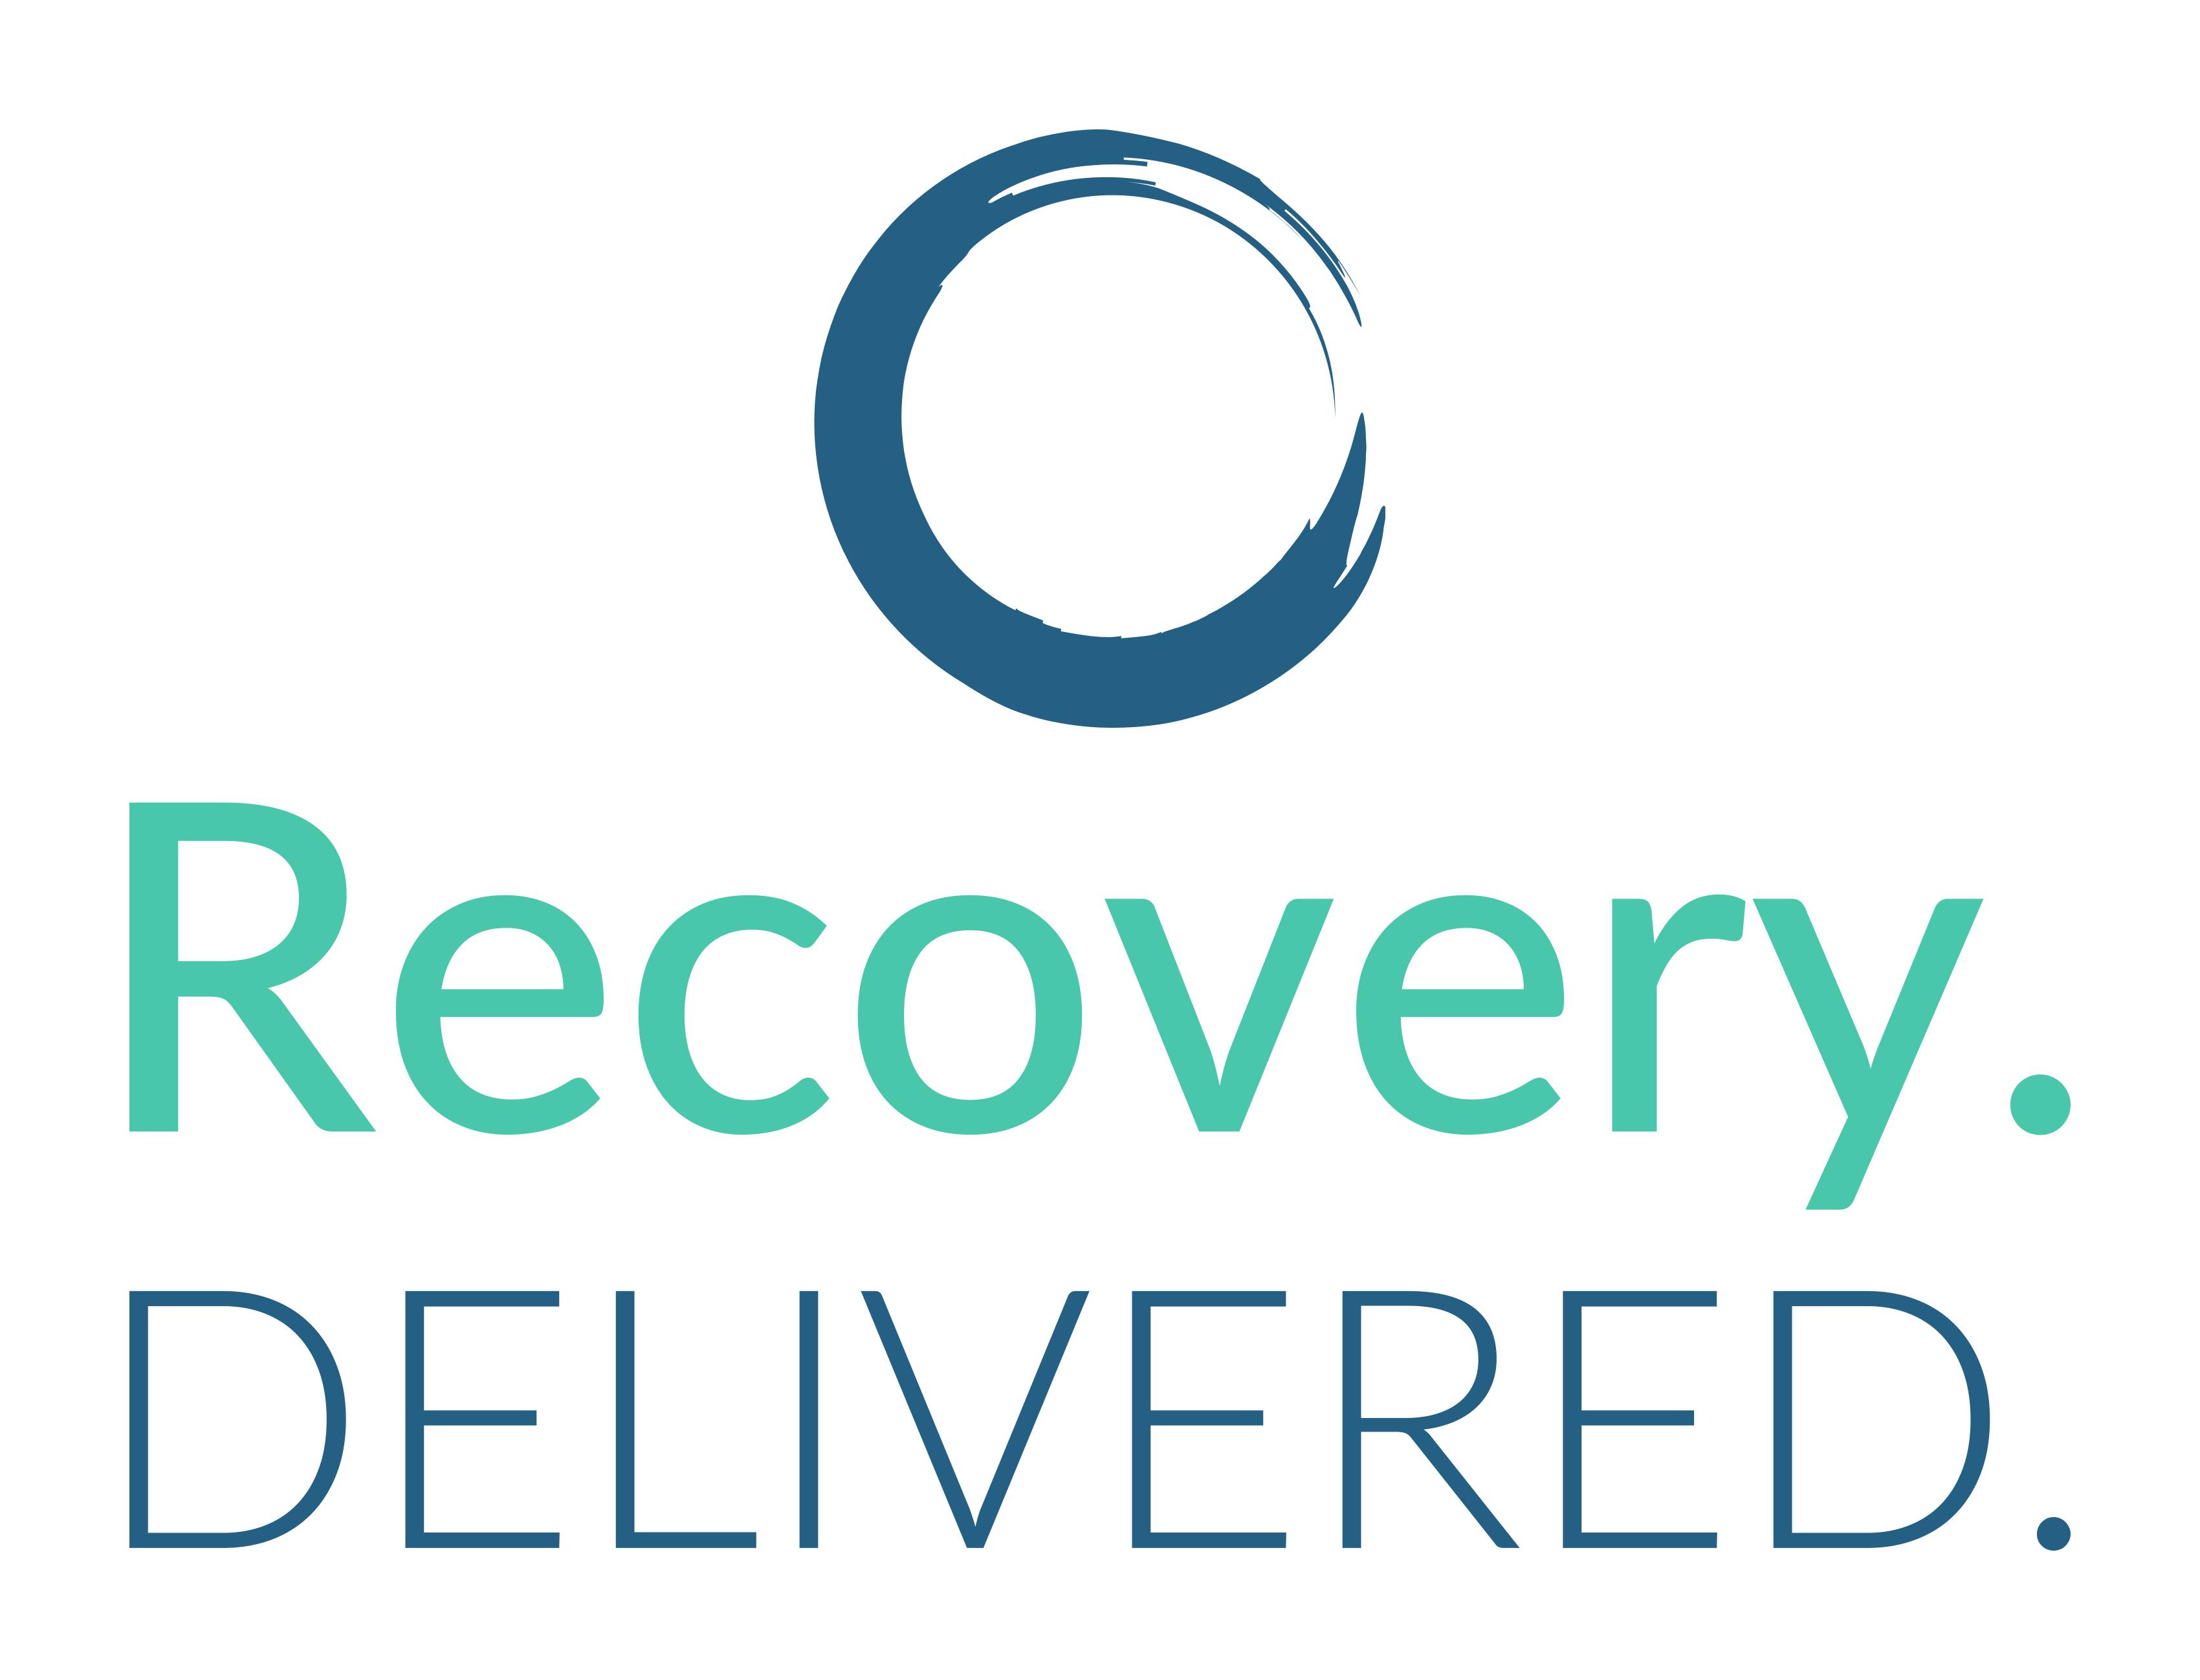 Recovery. Delivered. - Online Addiction Treatment